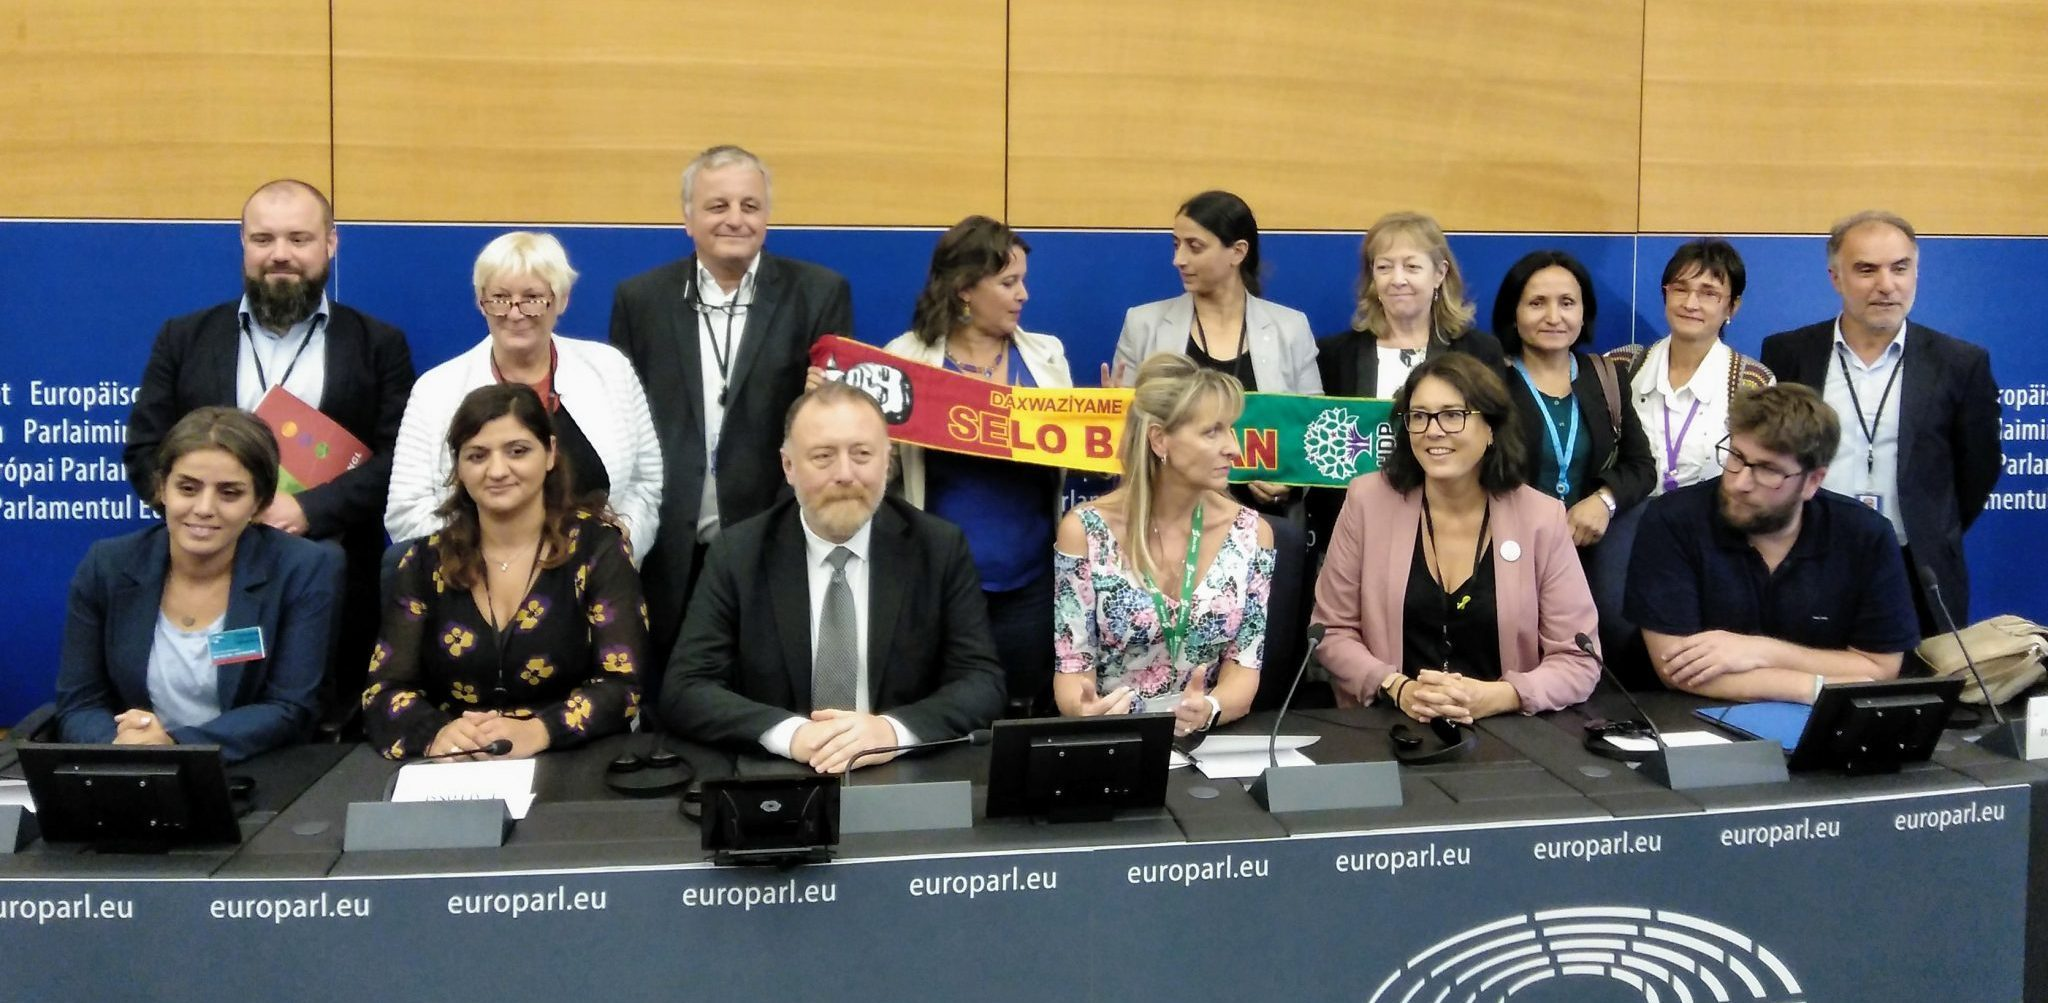 EFA promotes a Kurdistan Friendship Group and calls on the EU to act in the defence of democracy in Turkey